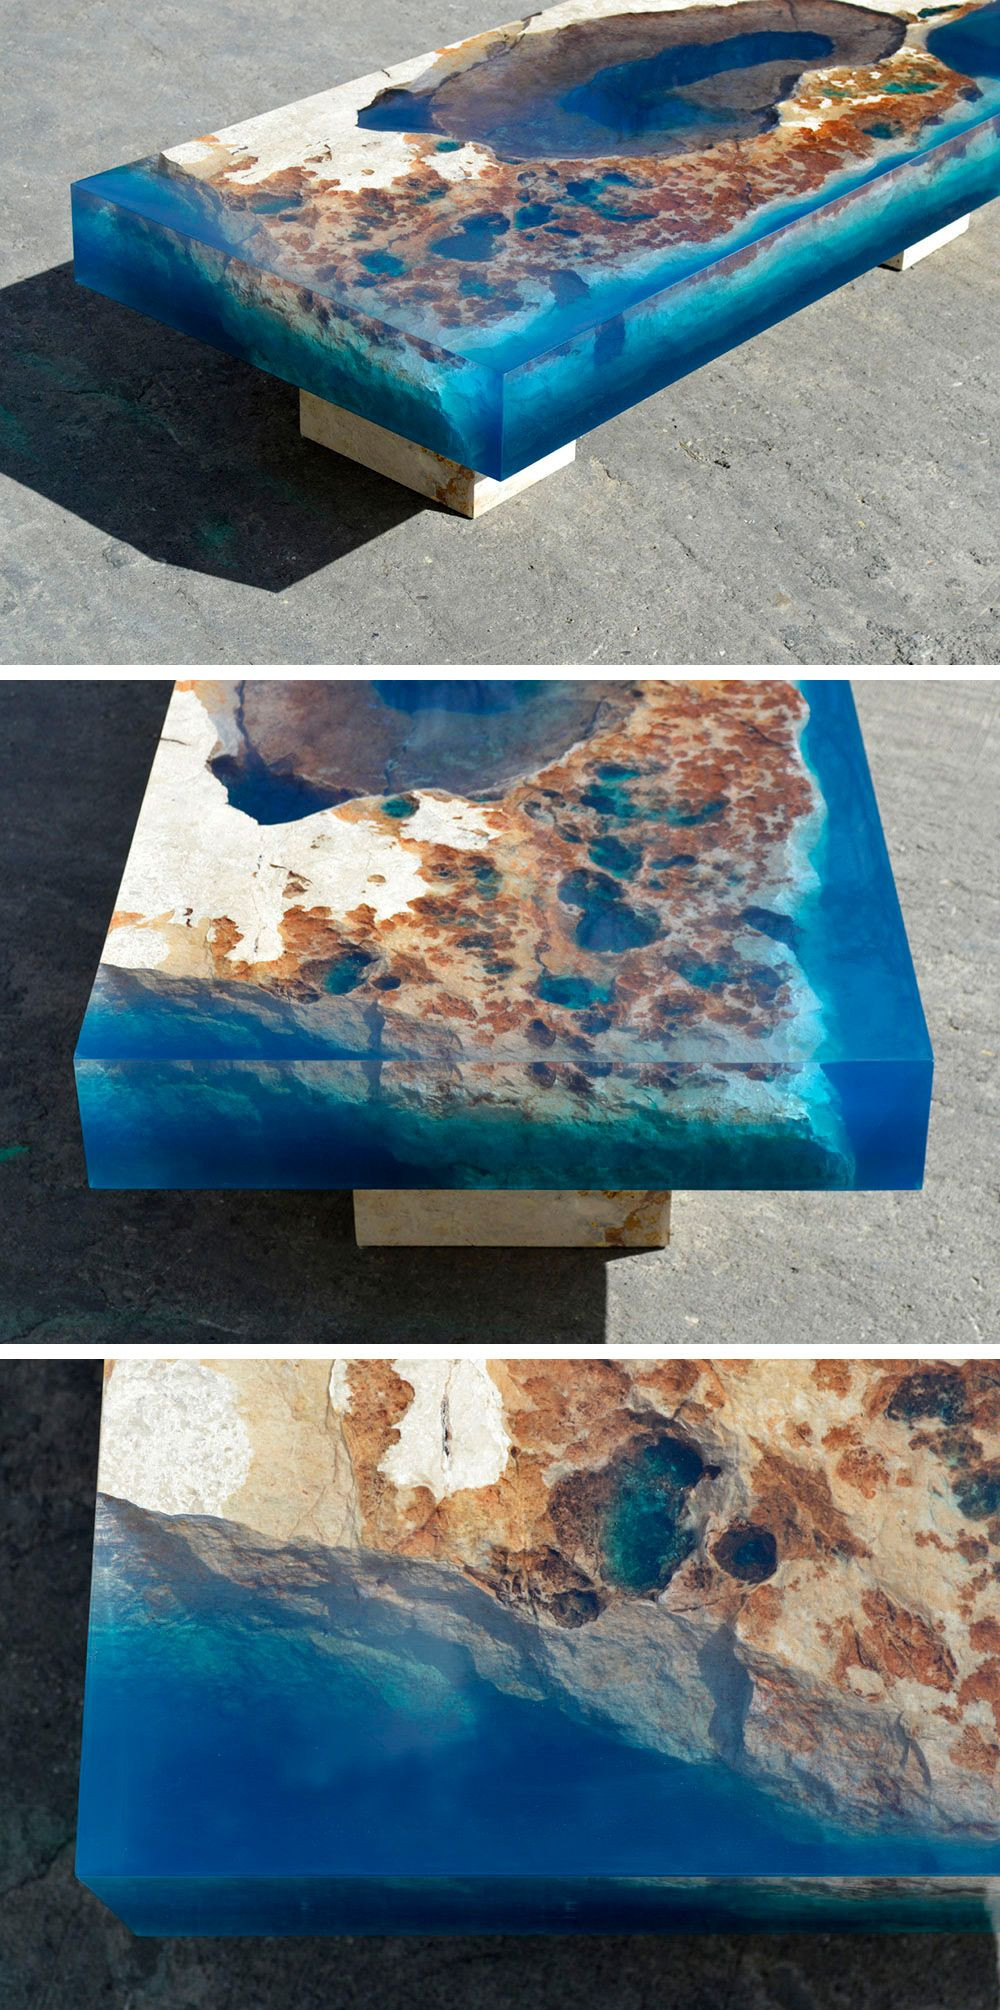 Best ideas about Resin Table DIY . Save or Pin New Cut Stone Tables Encased in Resin Mimic an Ocean Reef Now.